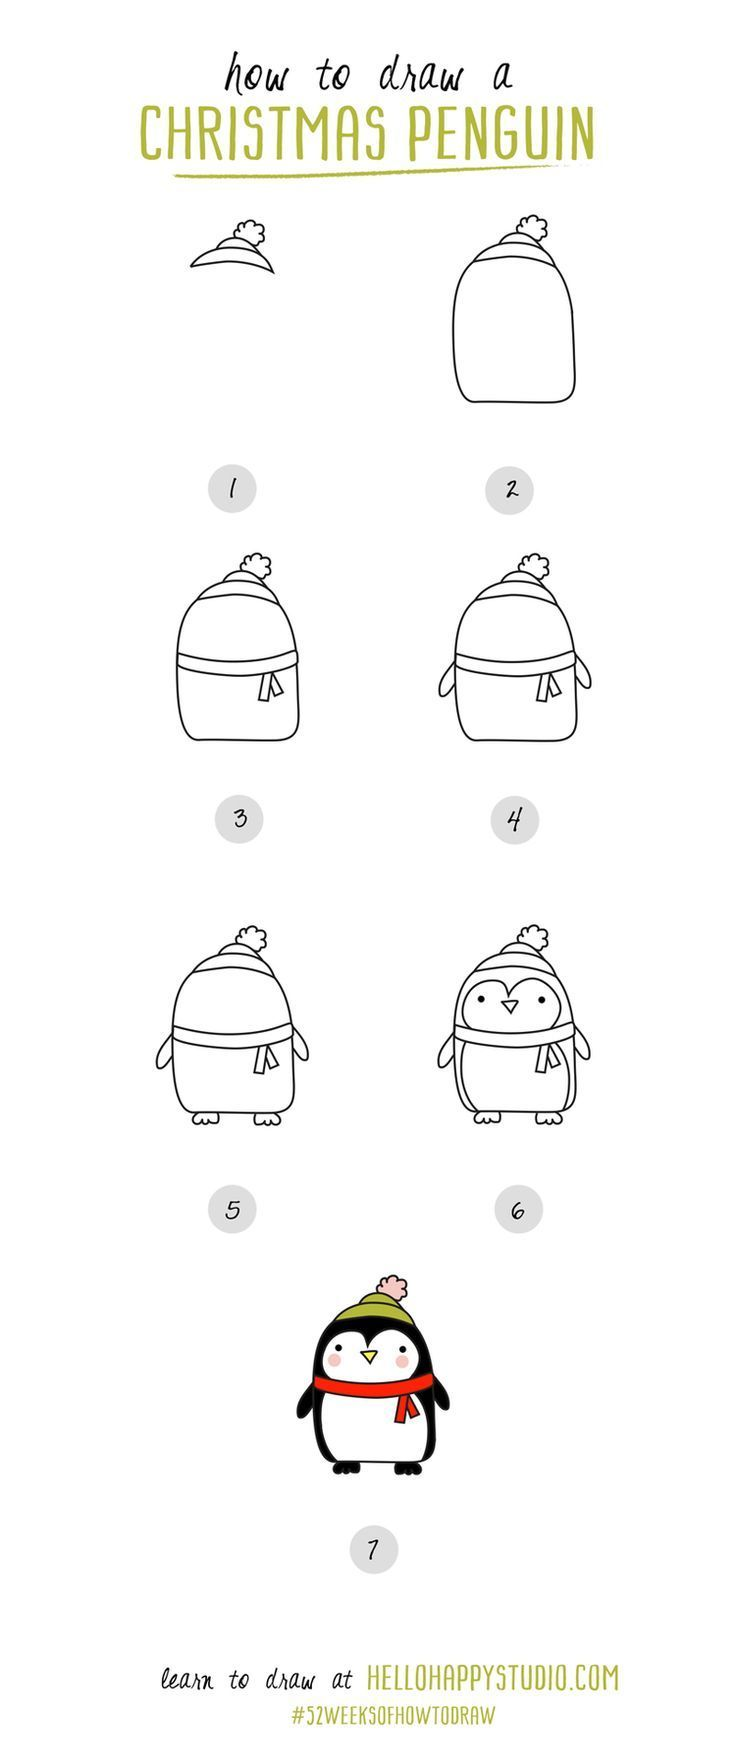 How to draw a Christmas penguin Simple tutorial even kids could follow